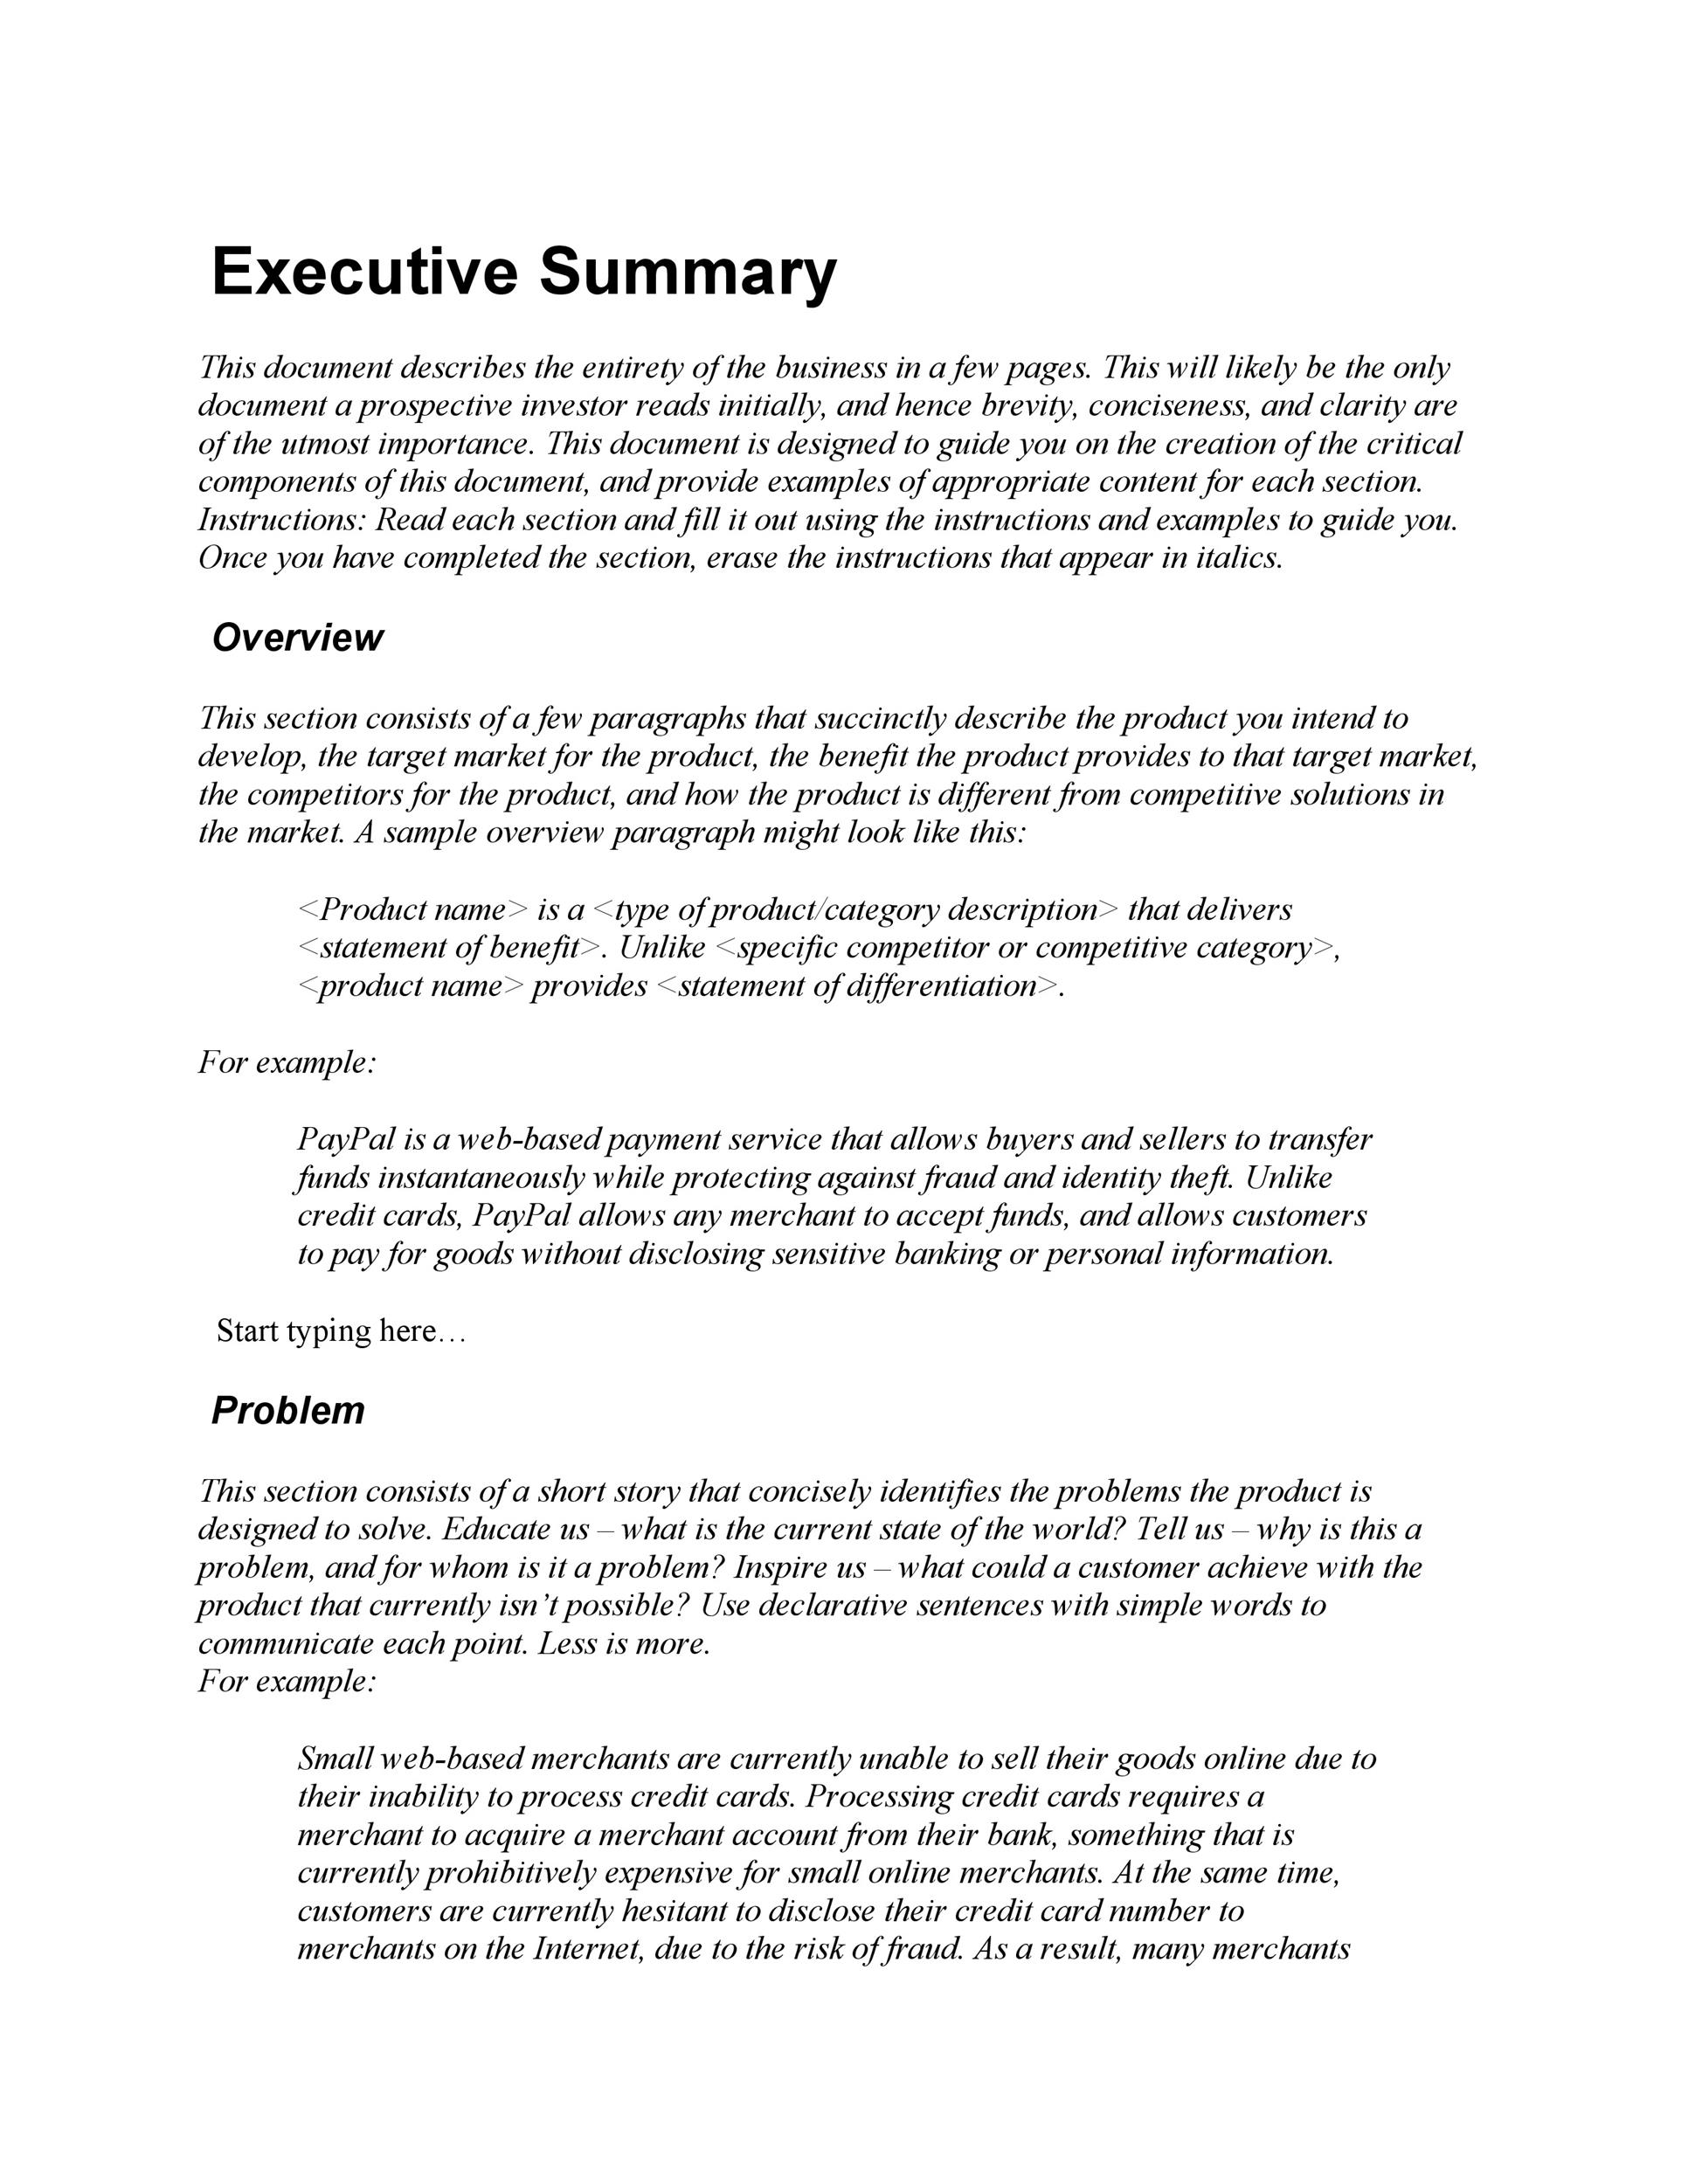 Executive Summary Format Example